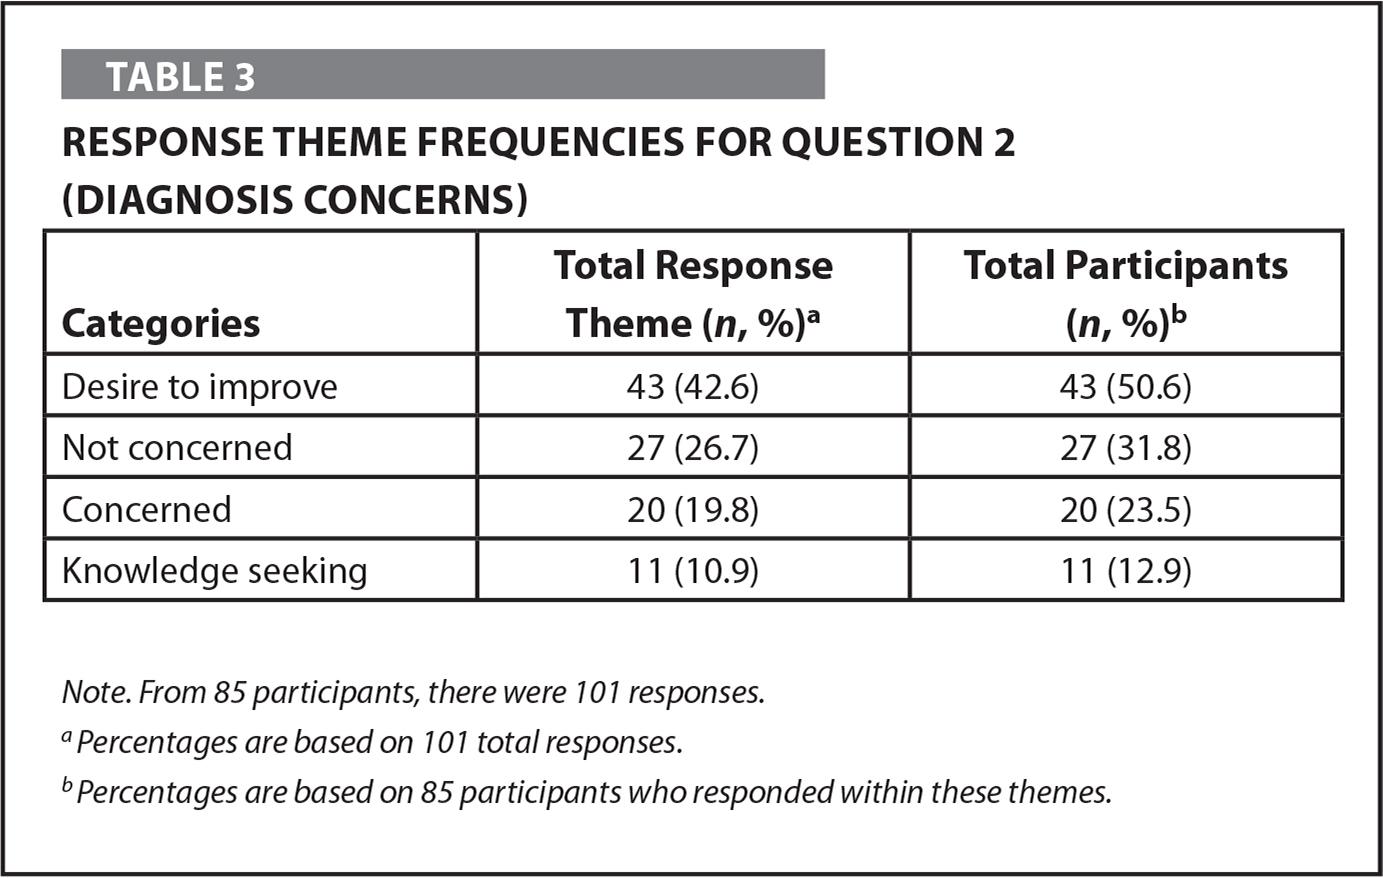 Response Theme Frequencies for Question 2 (Diagnosis Concerns)